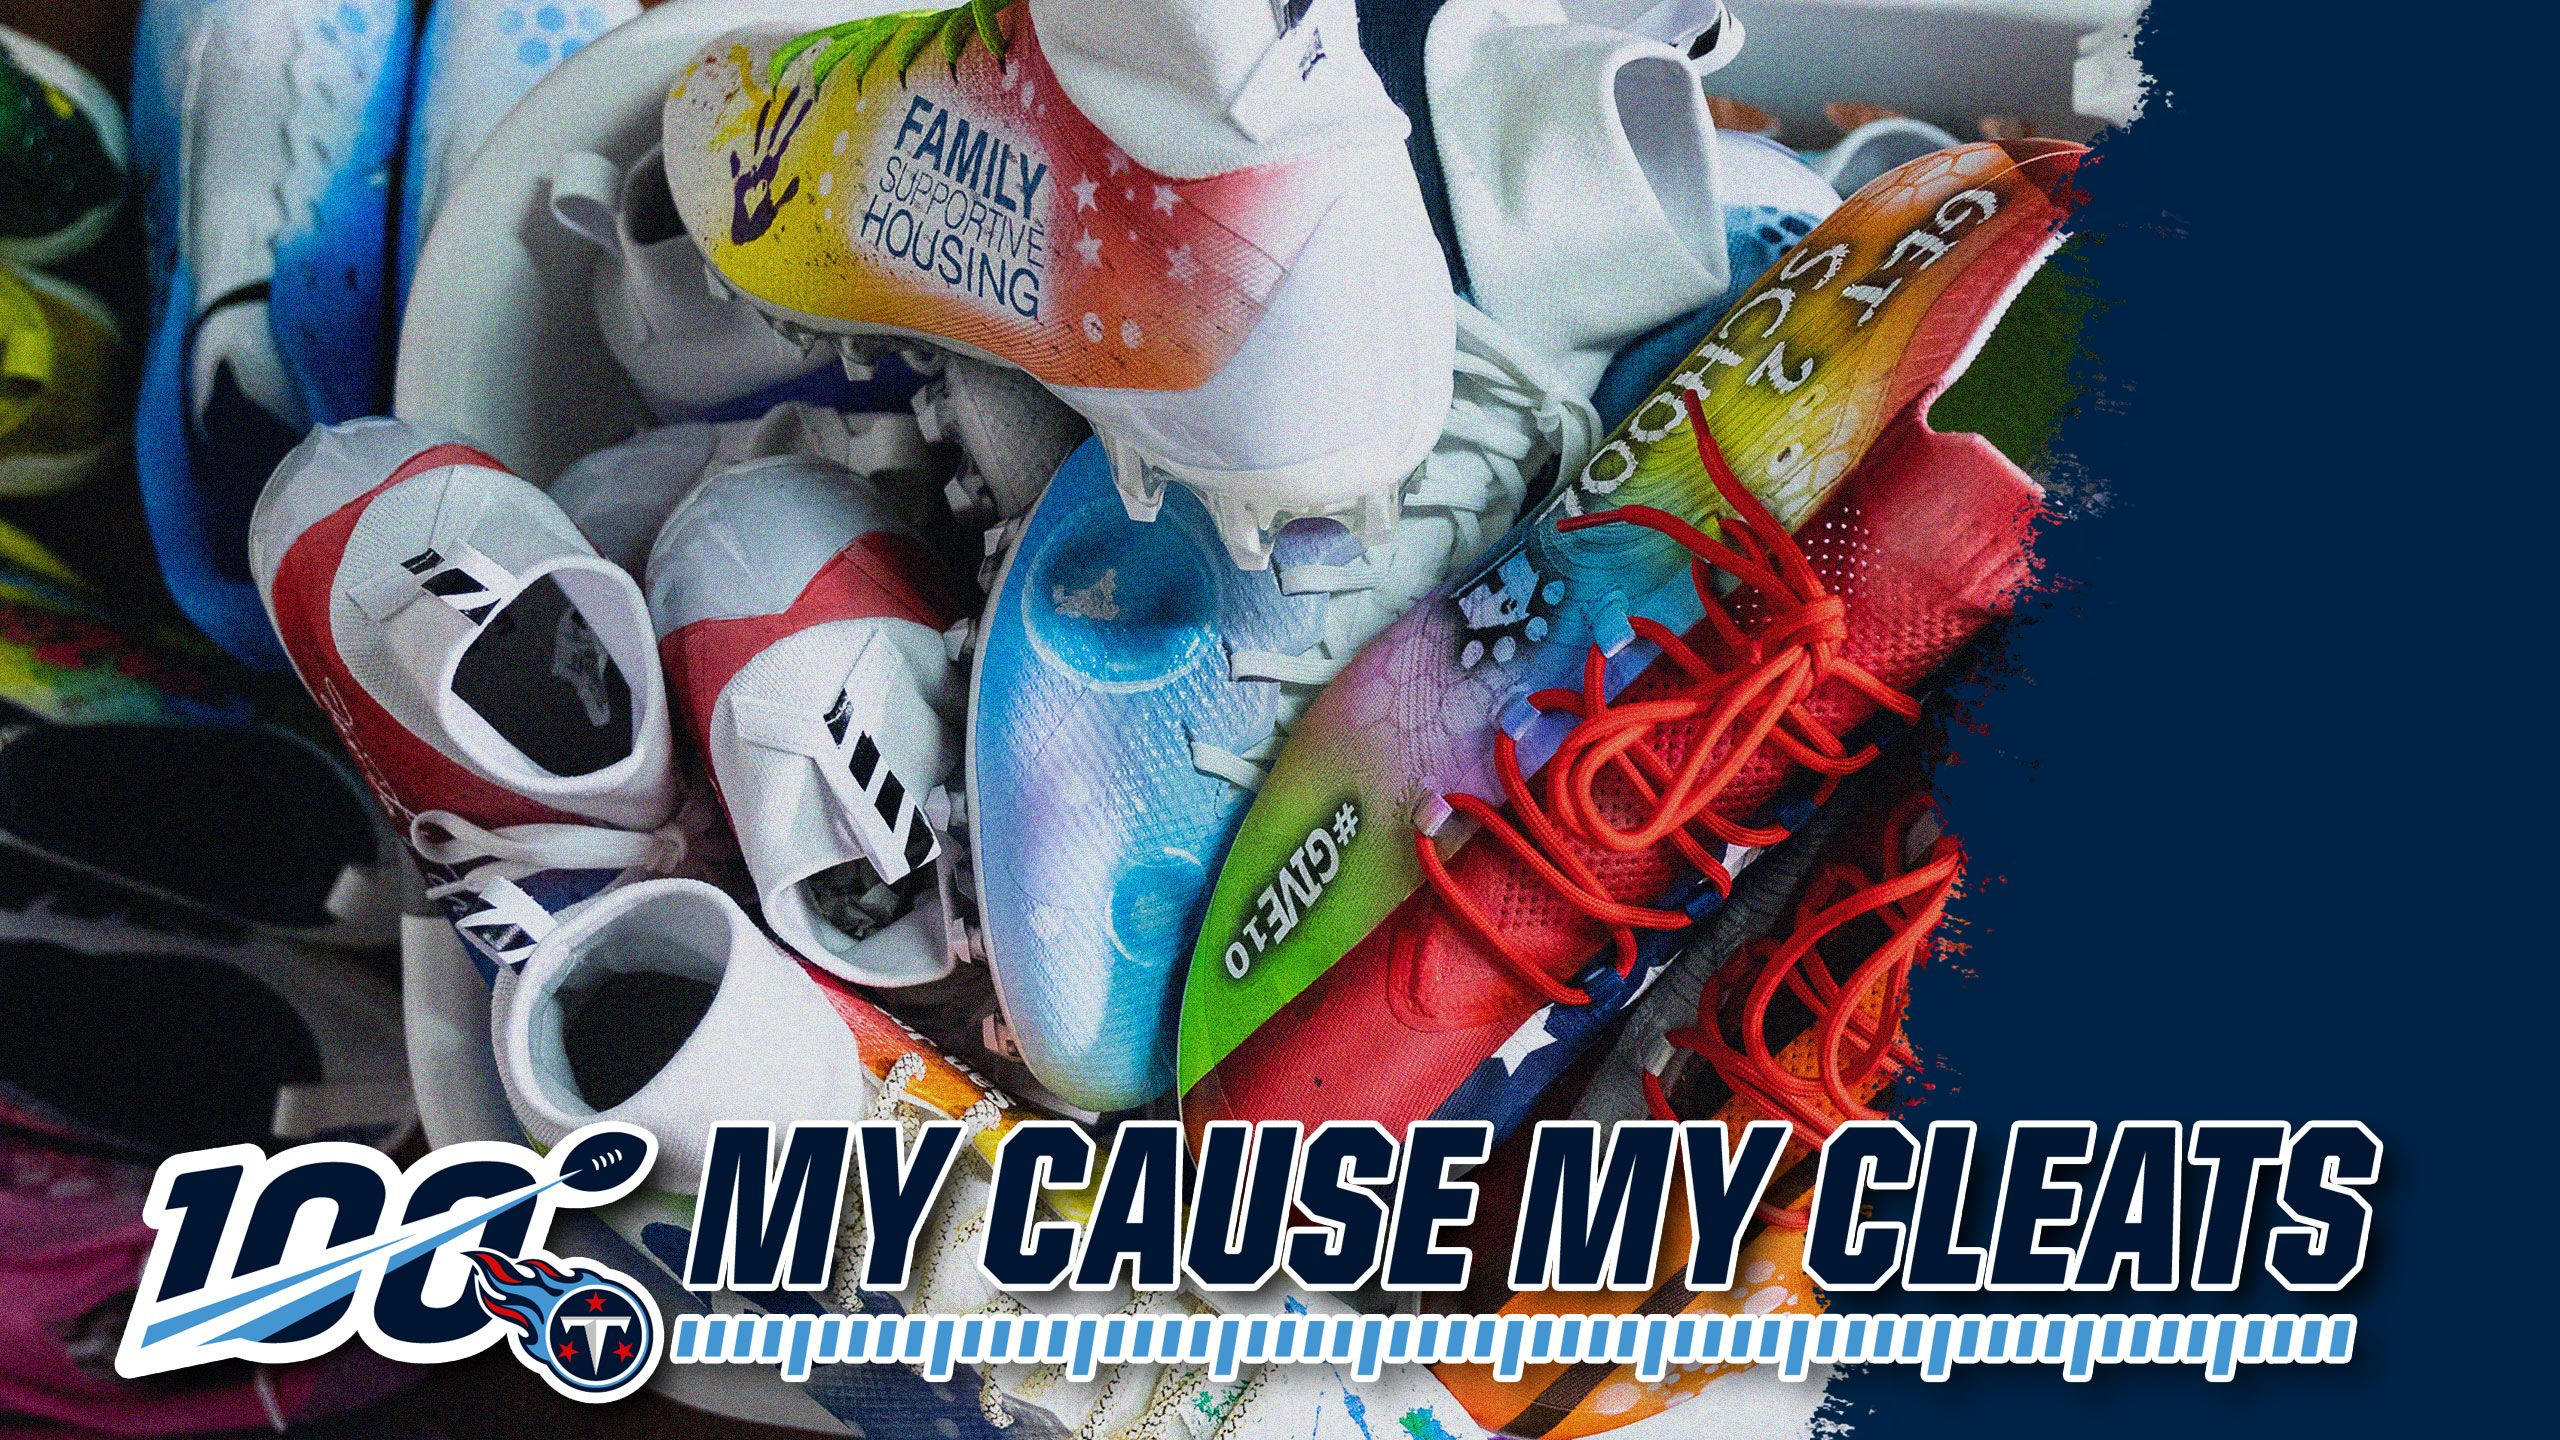 EVERY CLEAT TELLS A STORY.